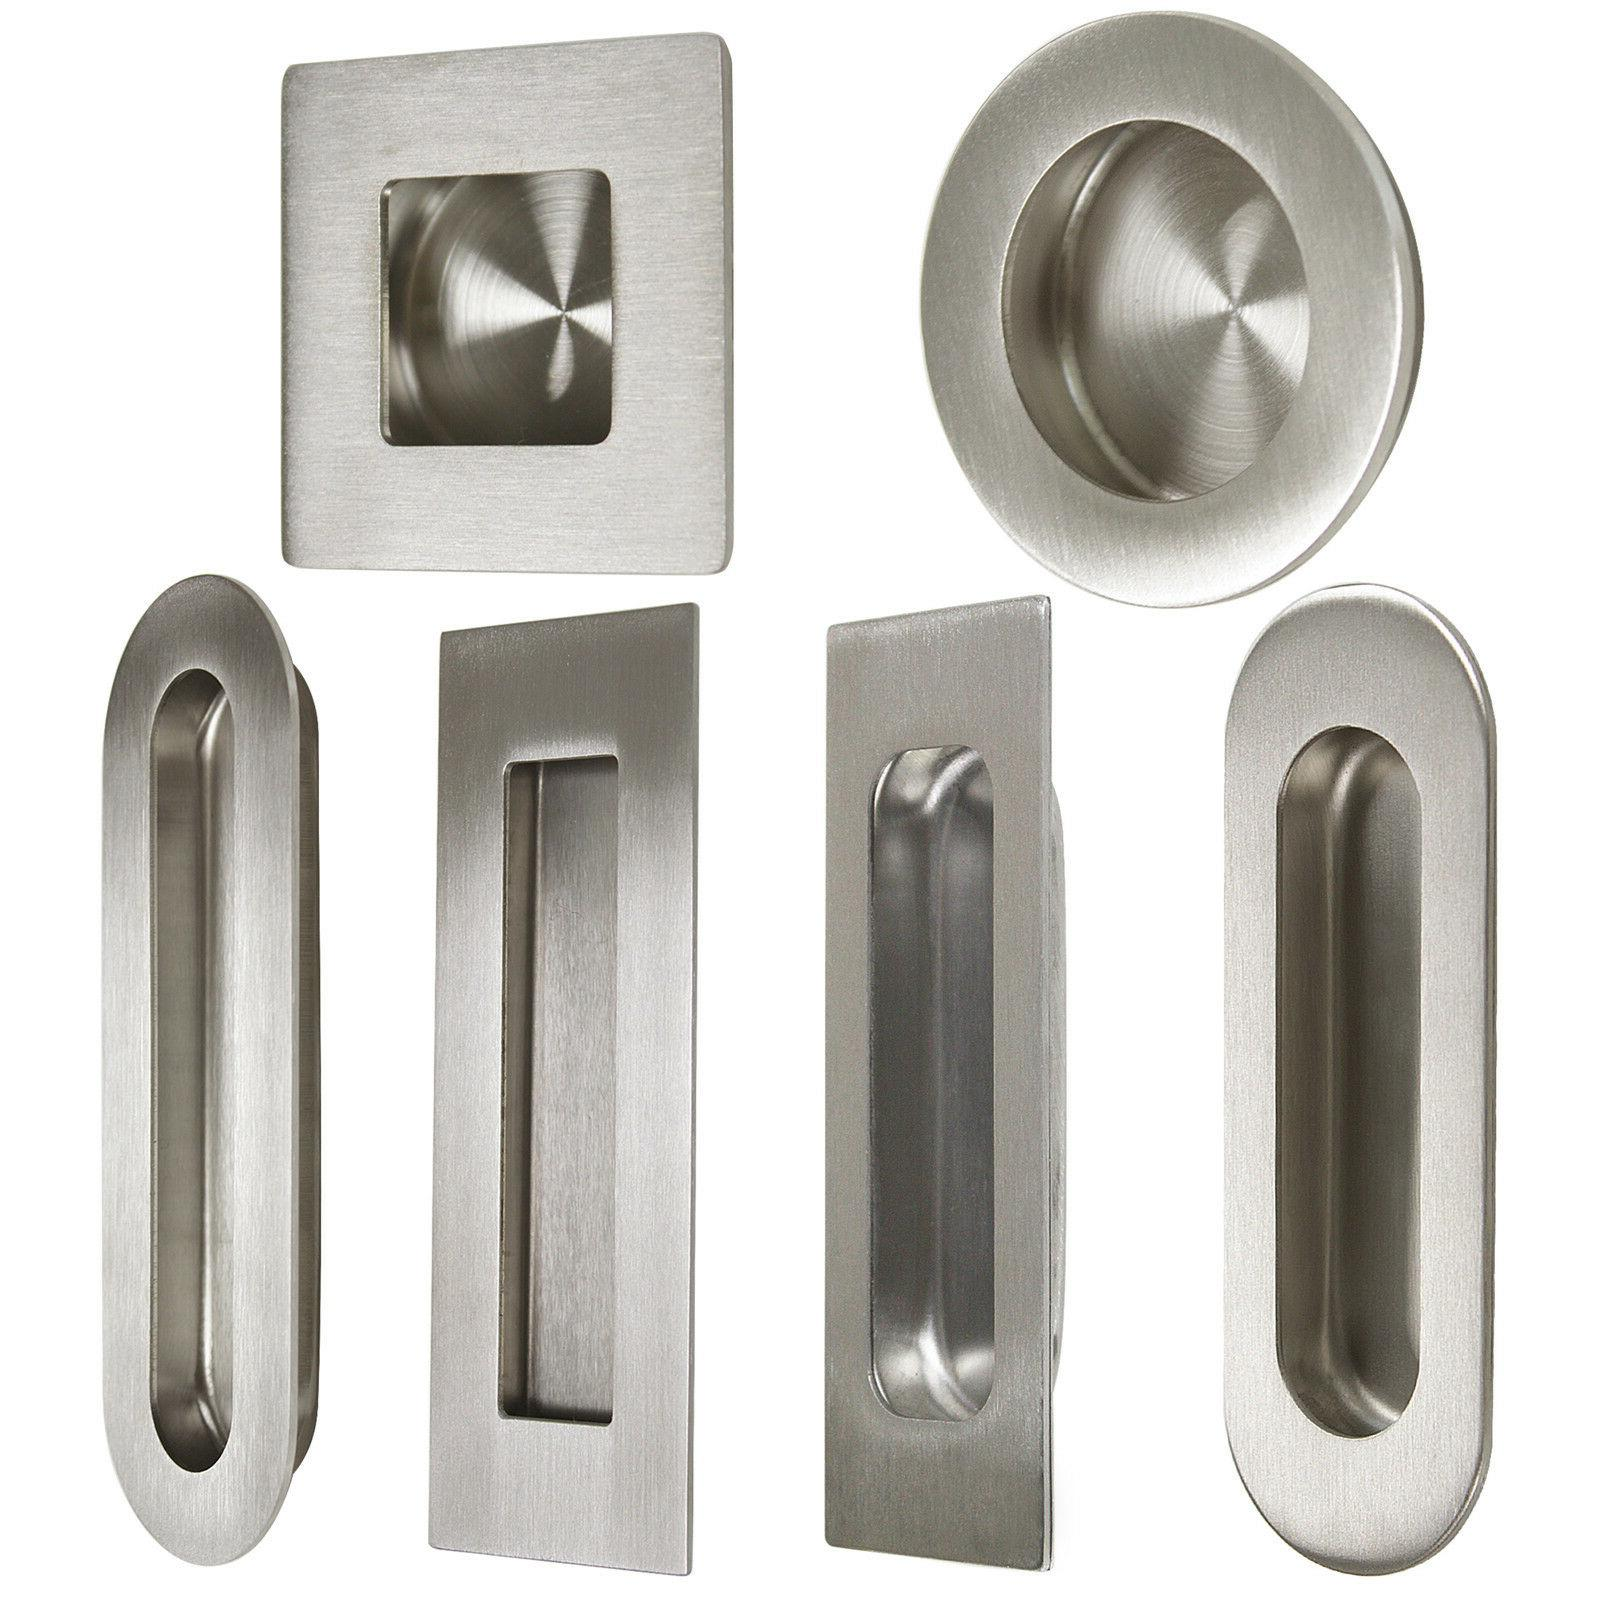 304 stainless steel recessed flush handles